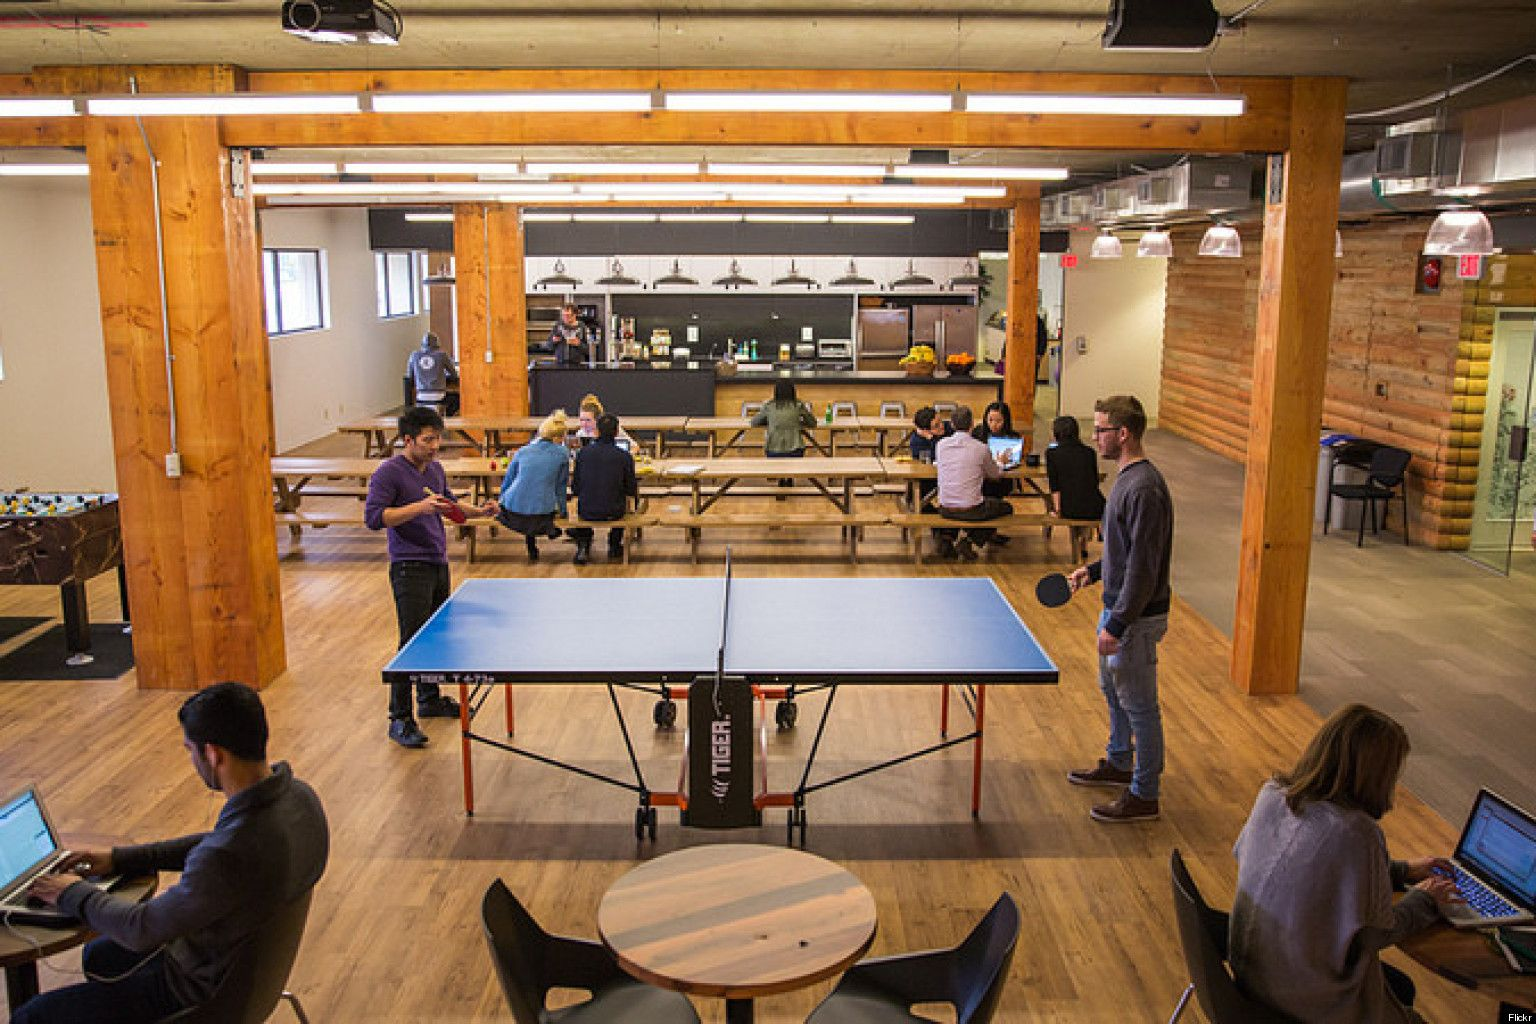 vancouver office space meeting rooms. hootsuite vancouver office boasts beer nap room ping pong designed by ssdg interiors space meeting rooms m